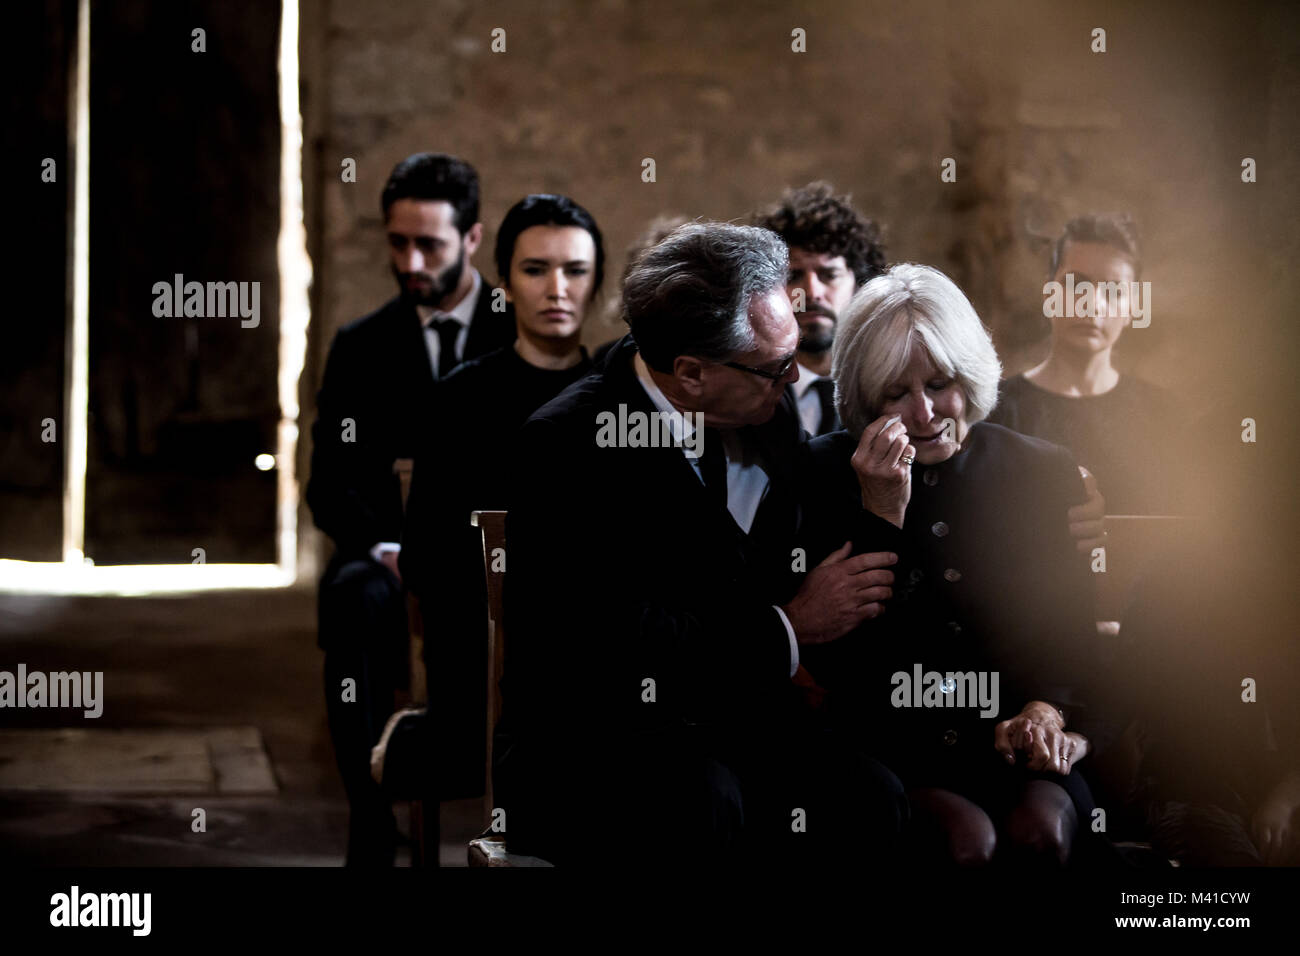 Senior woman being comforted at a funeral - Stock Image